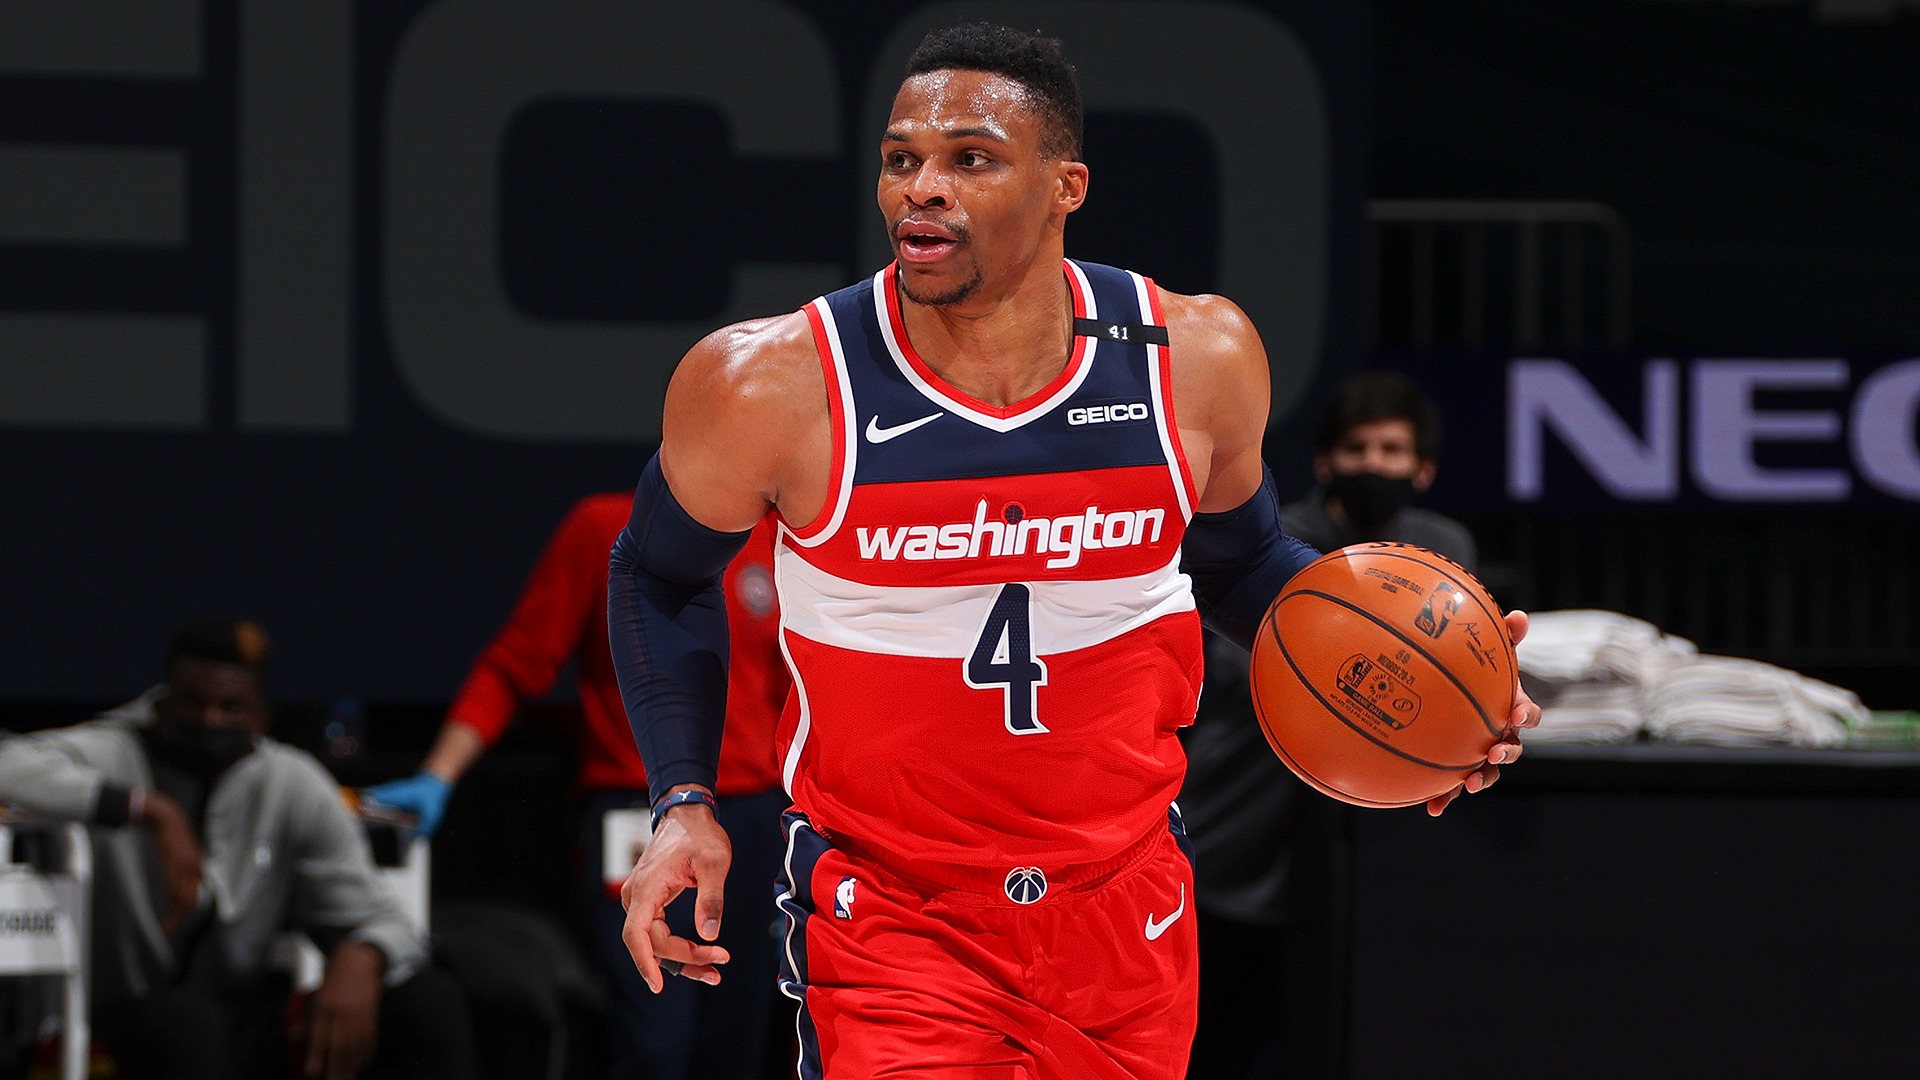 Russell Westbrook rises to 13th all-time in assists